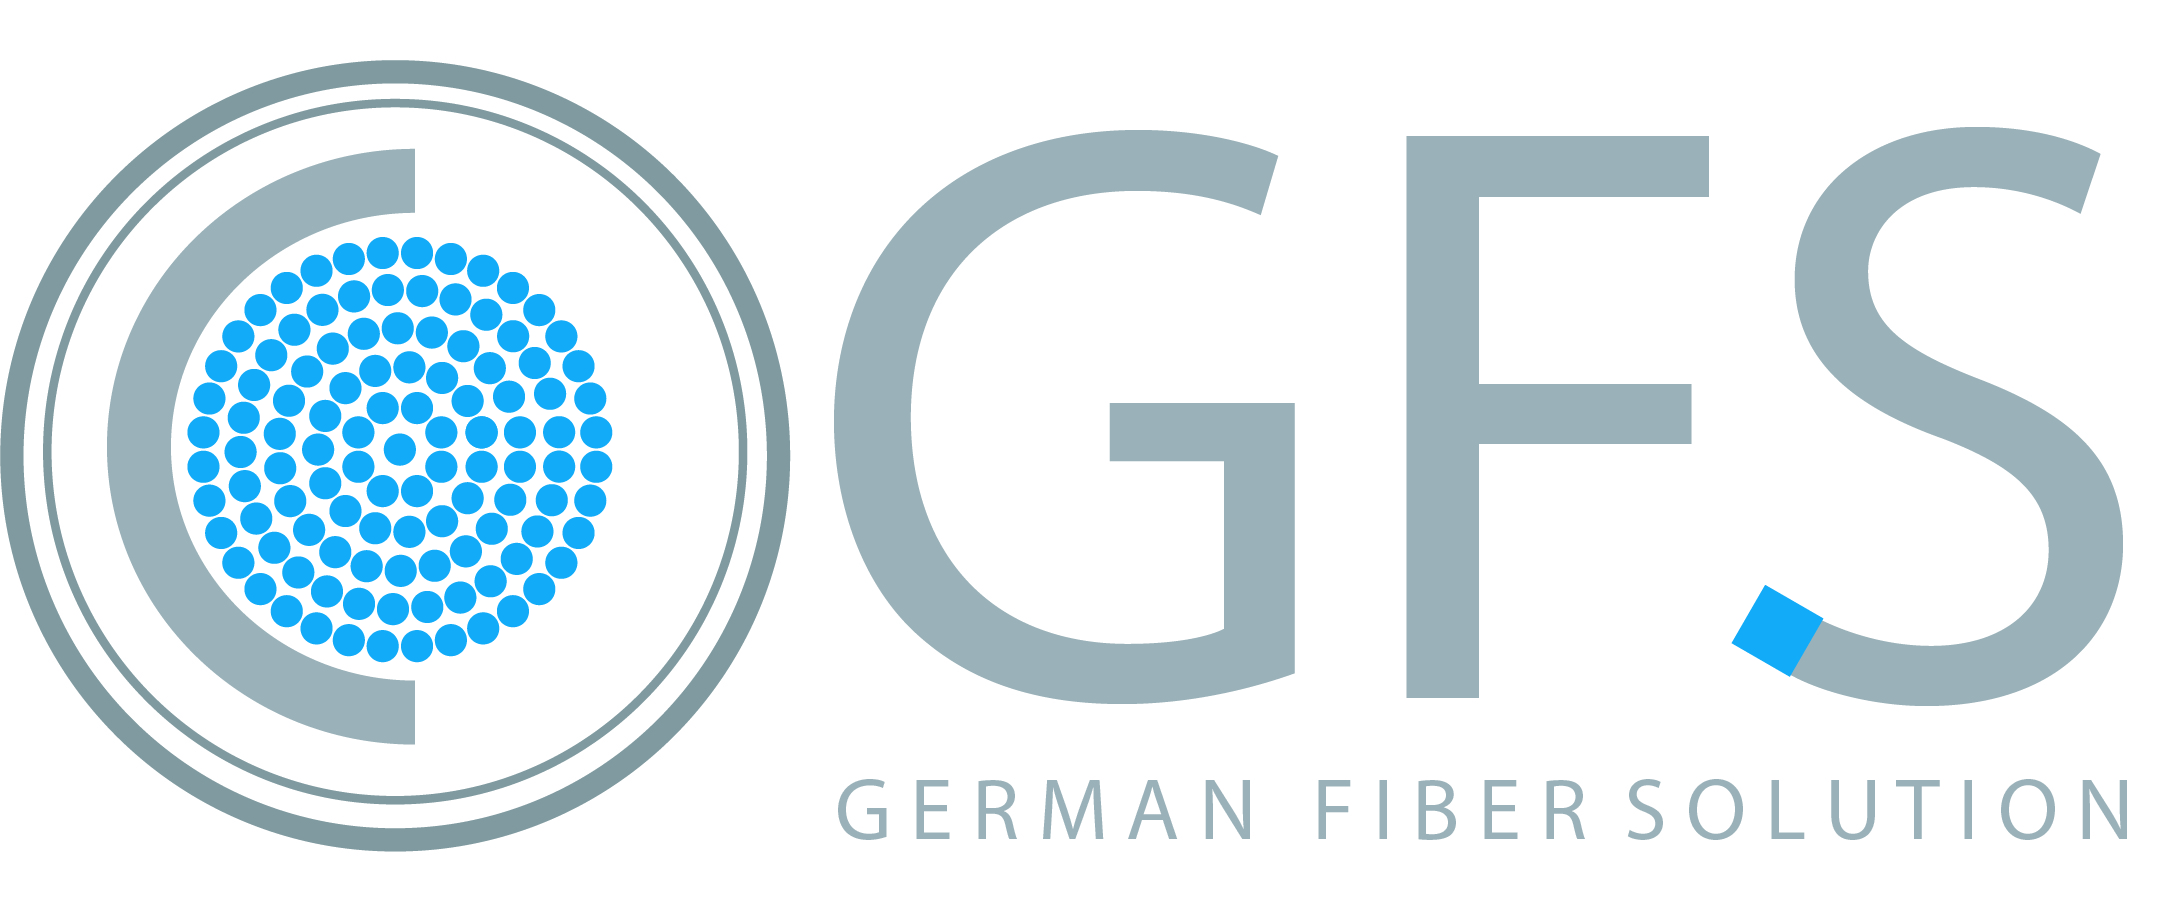 German Fiber Solution GmbH & Co. KG